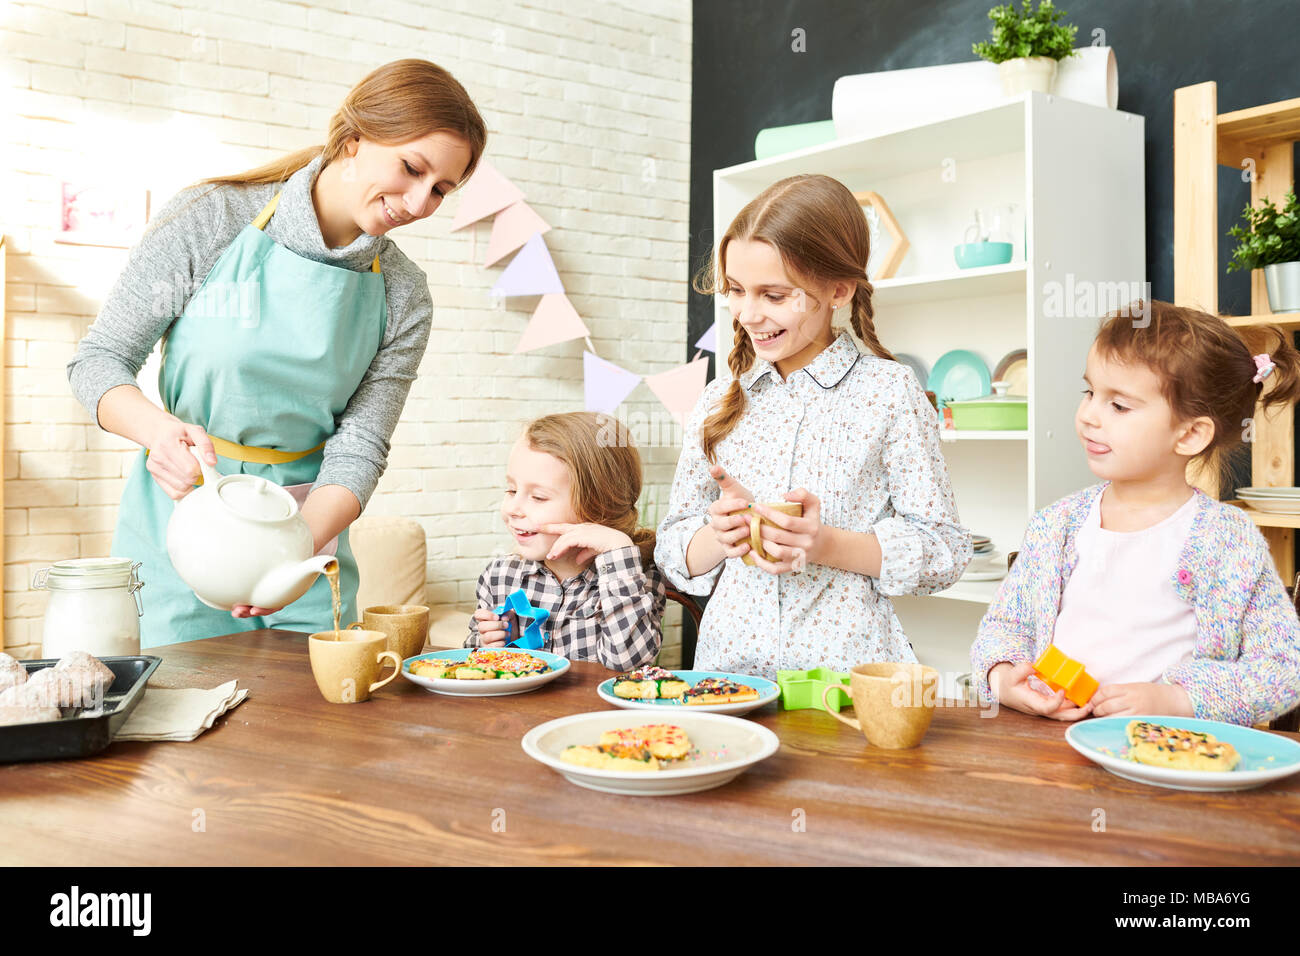 Adorable Family Having Tea Party - Stock Image